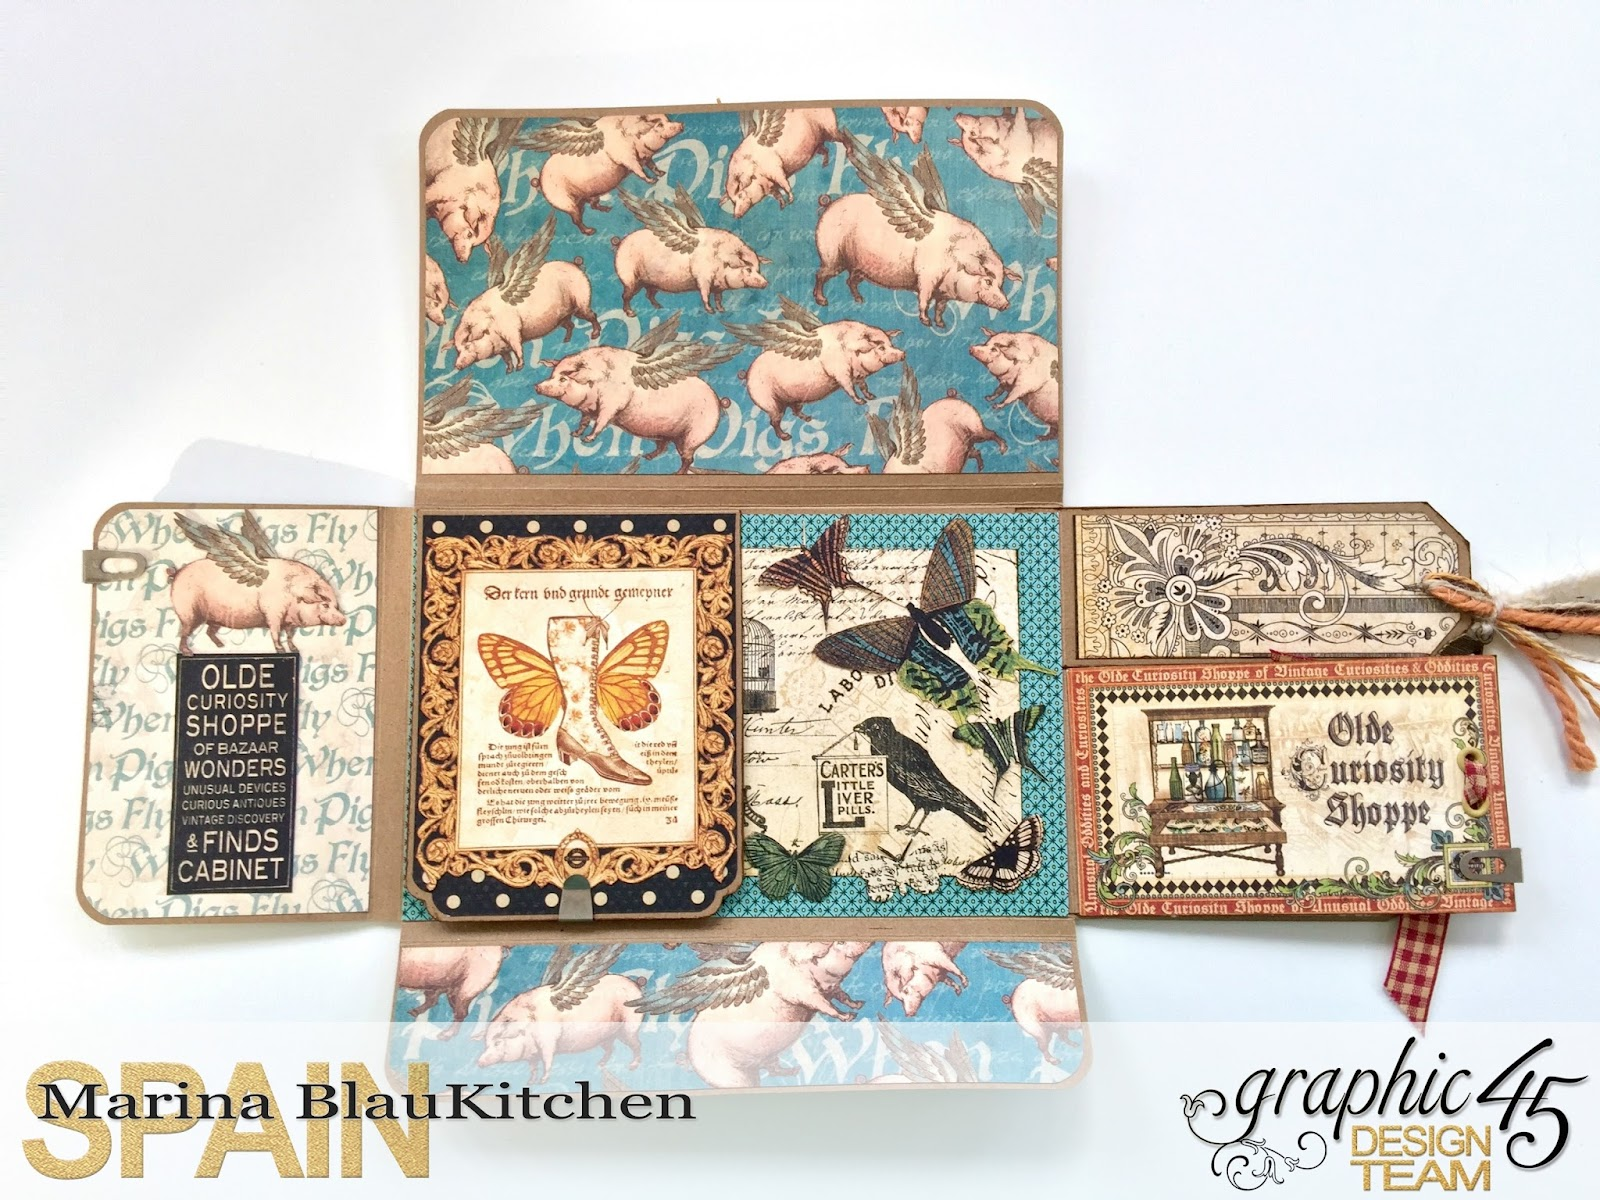 Olde Curiosity Shoppe Flip Flap Mini Album by Marina Blaukitchen Product by Graphic 45 photo 9.jpg